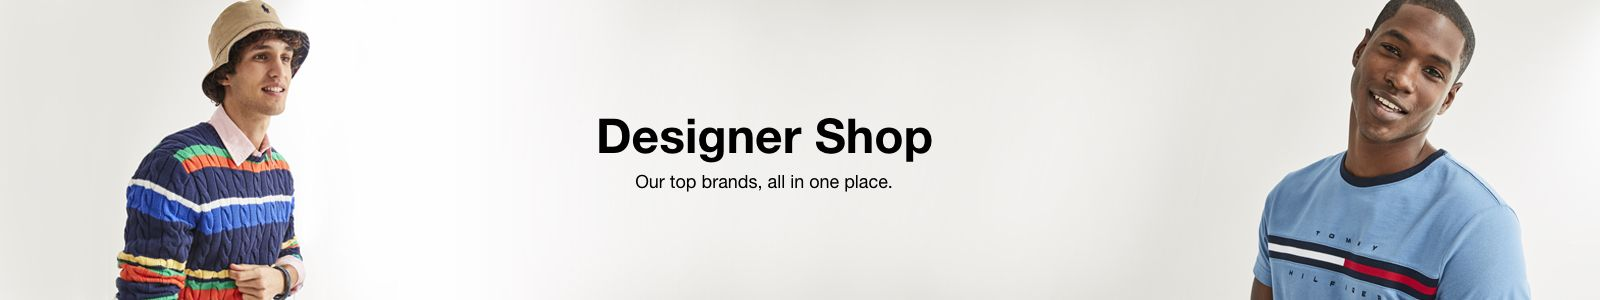 Designer Shop Our top brands, all in one place